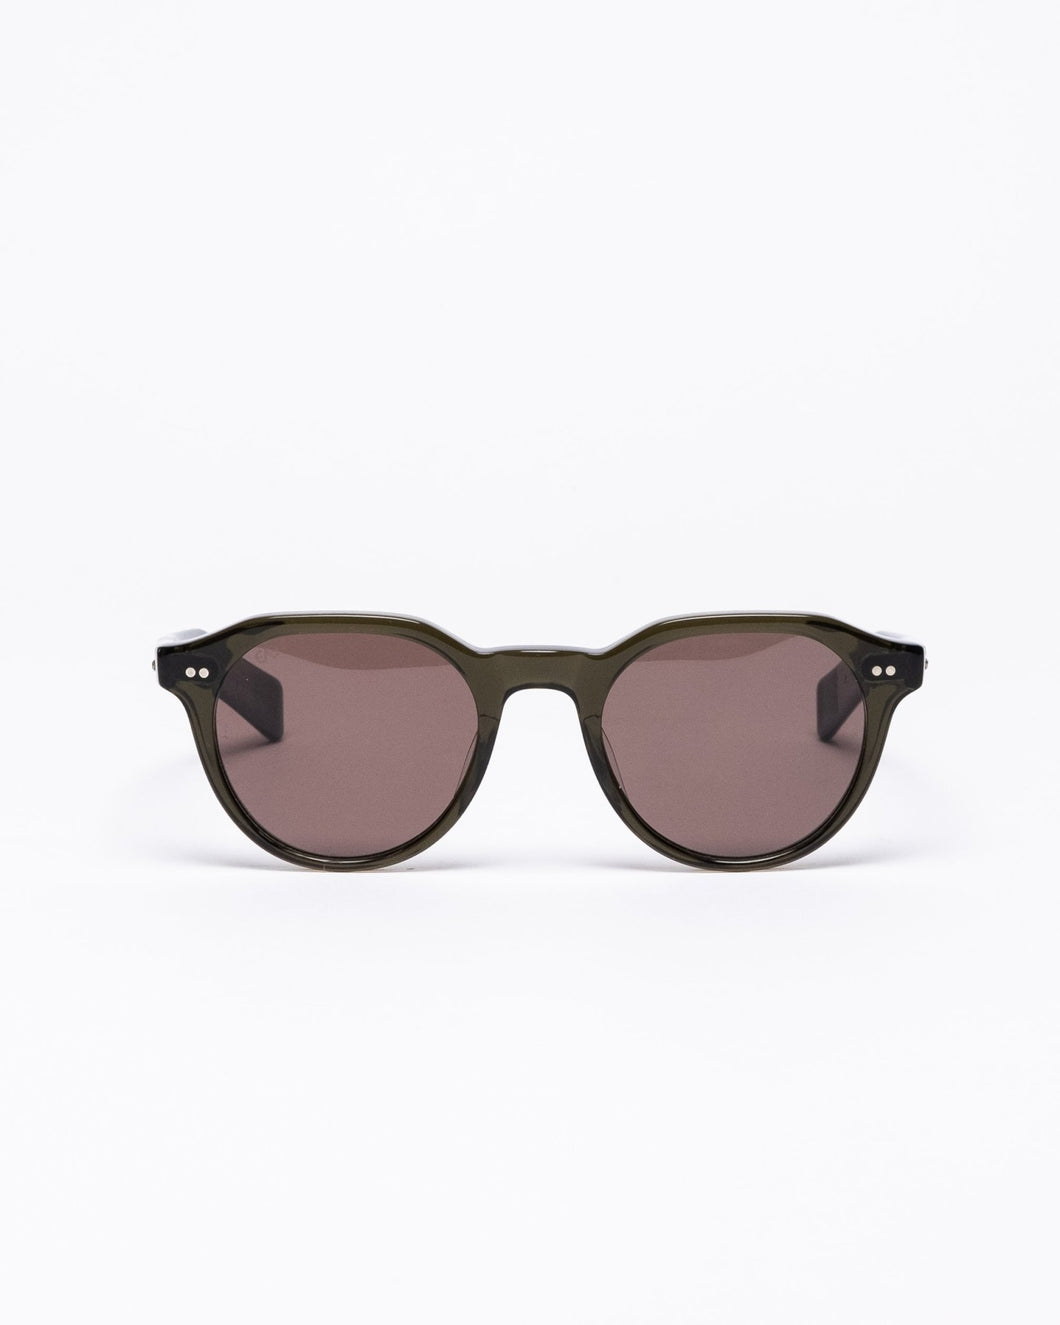 Lubin Sunglasses 48 Olive Drab/Brown - Meadow of Malmö